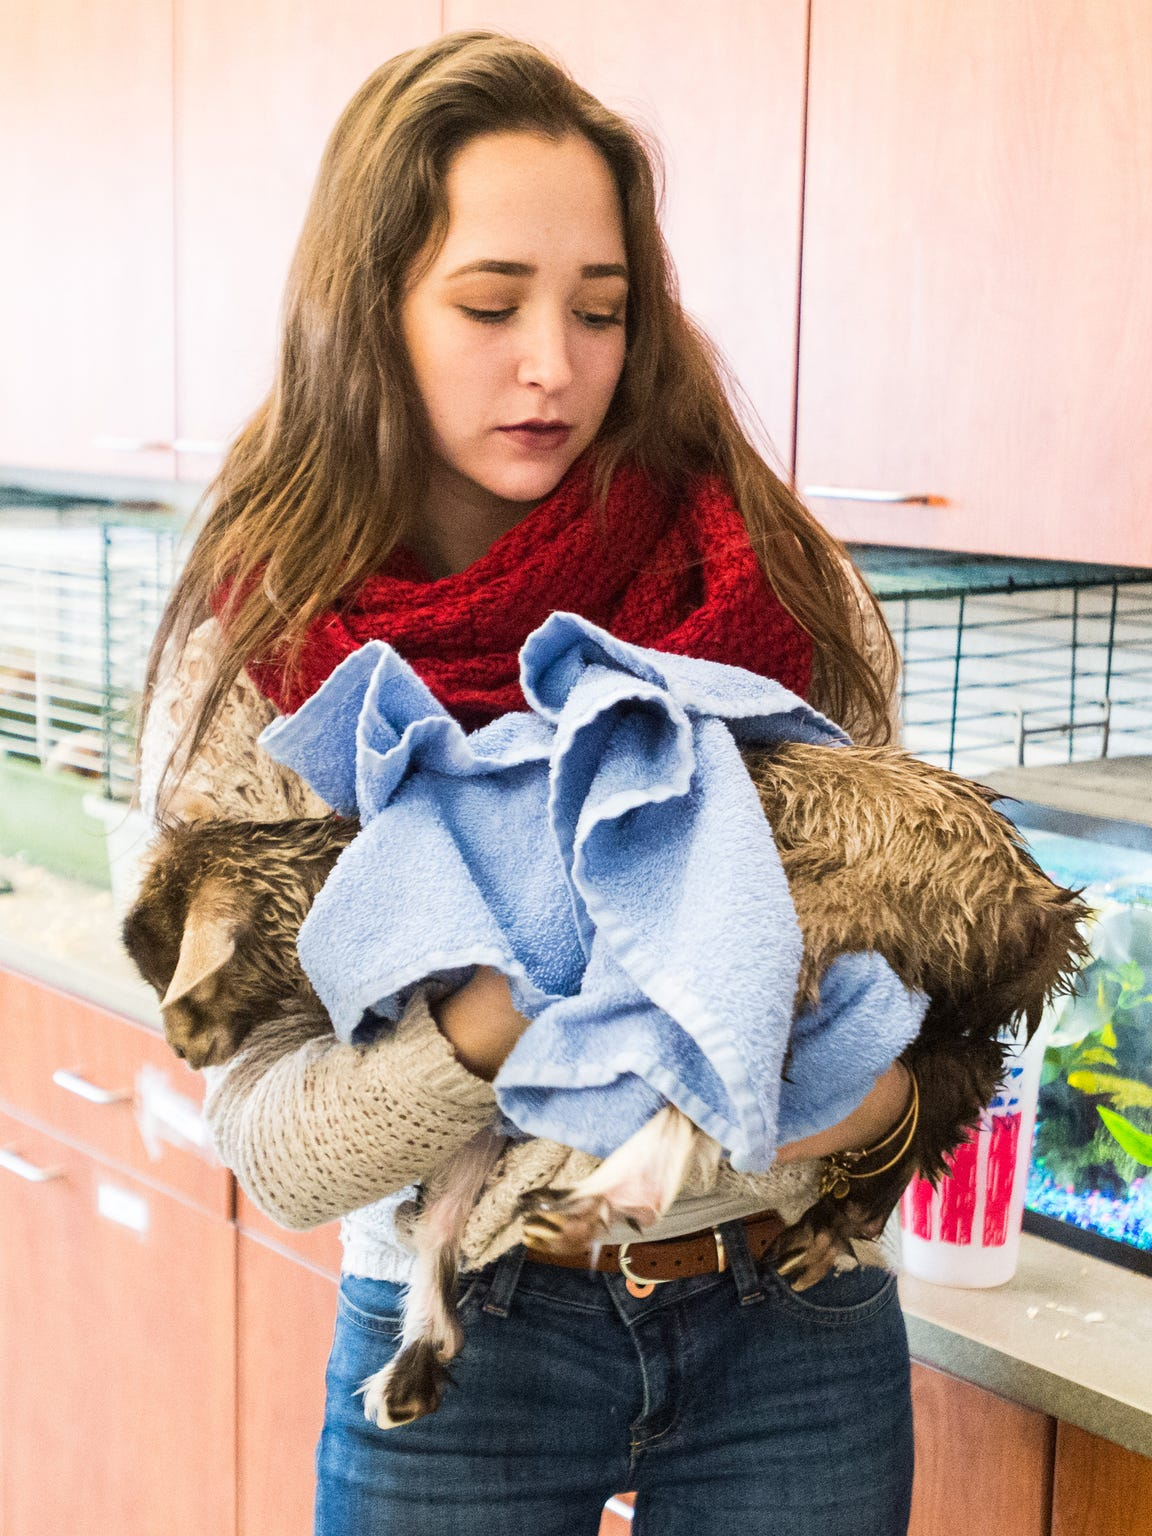 Cape Henlopen senior Madison Moore dries a goat after a bath at Cape Henlopen High School on Tuesday, March 22.